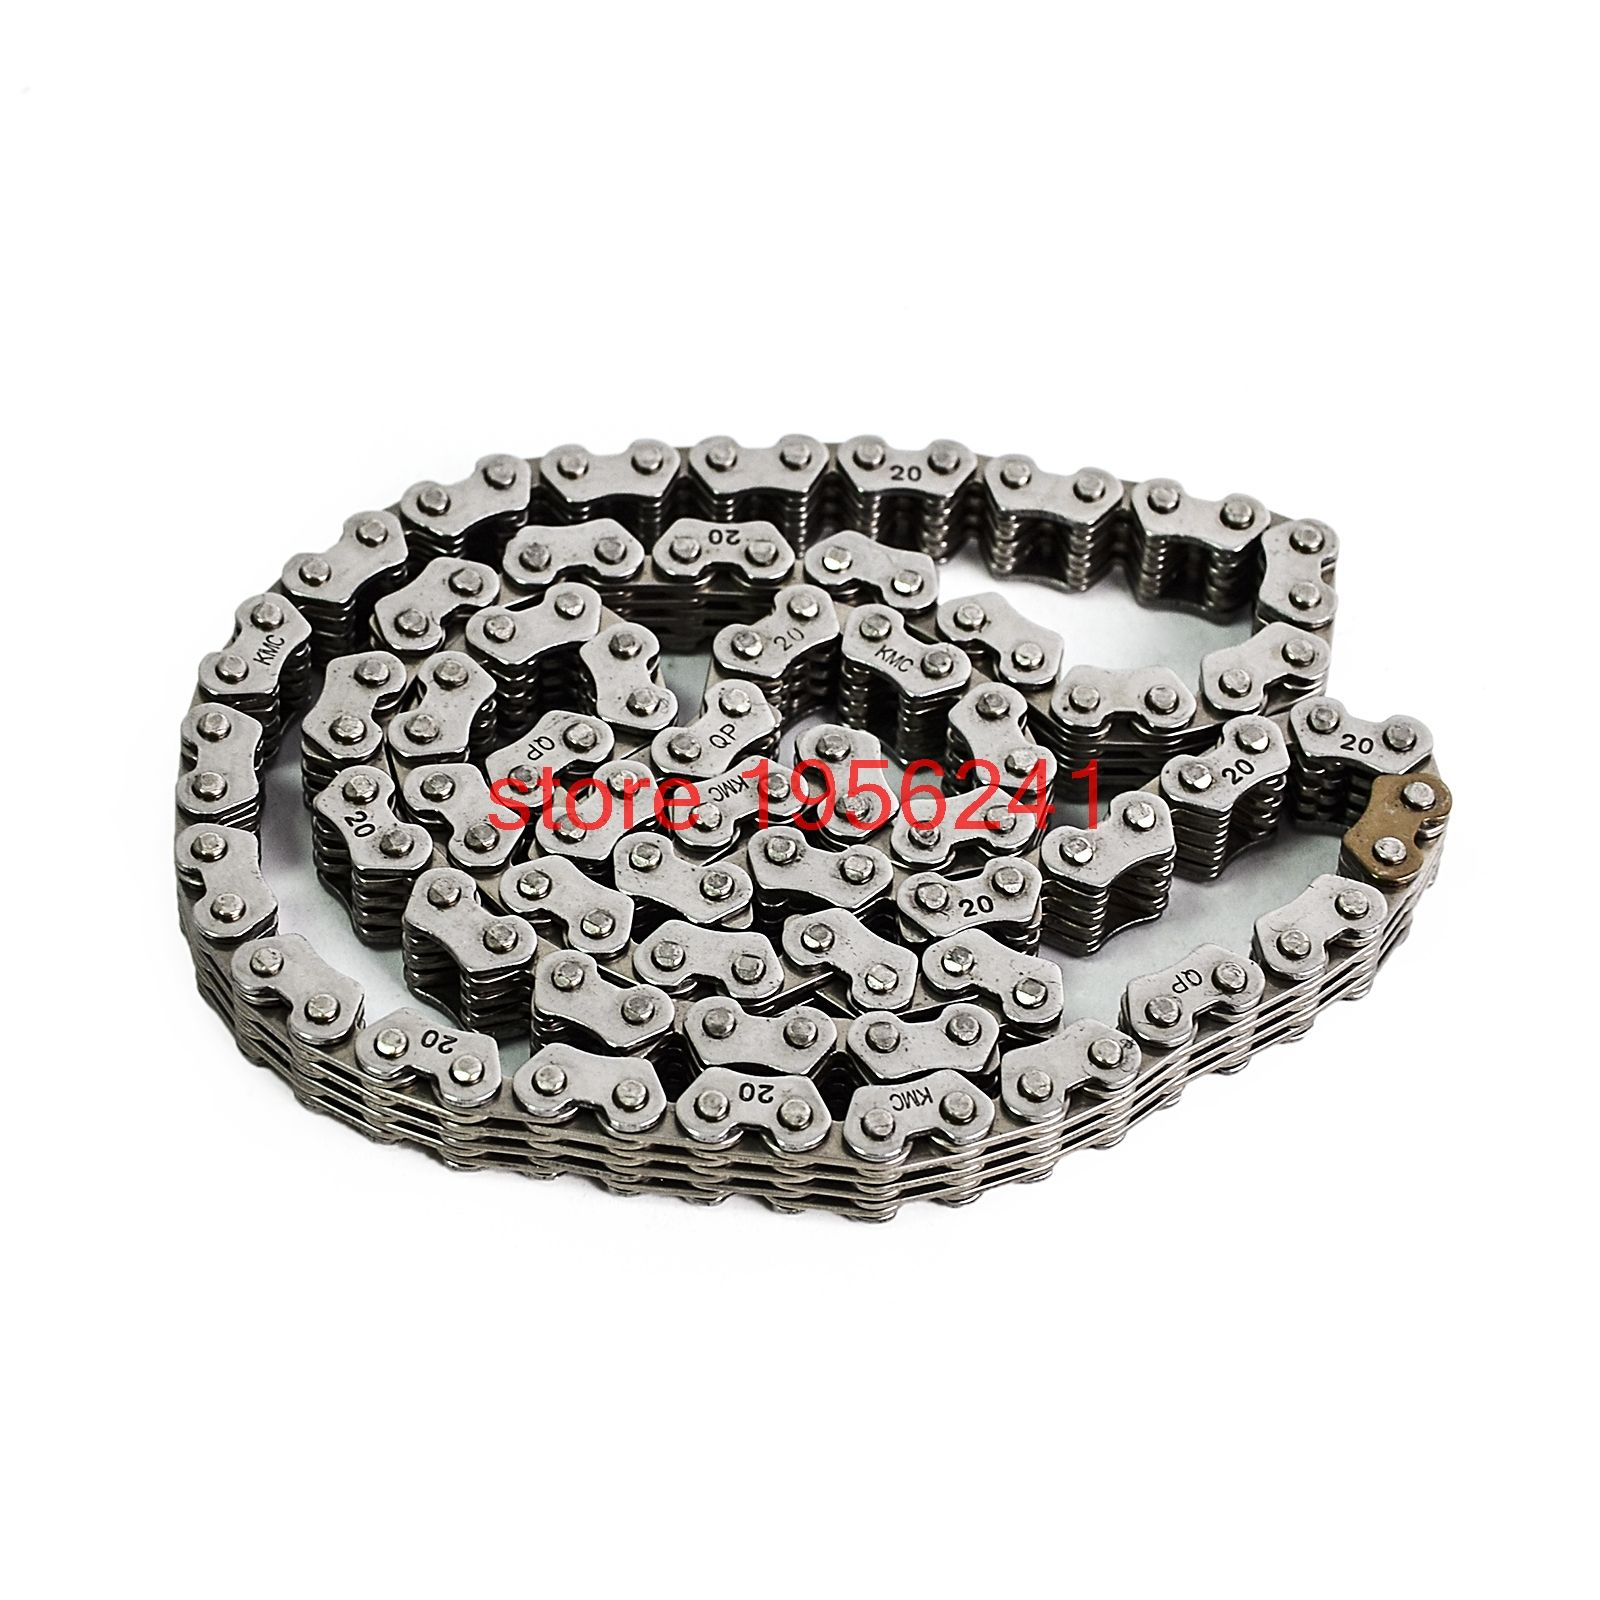 Motorcycle Accessories Camshaft Cam Timing Chain For Honda CRF450X CRF450R TRX450R TRX450ER